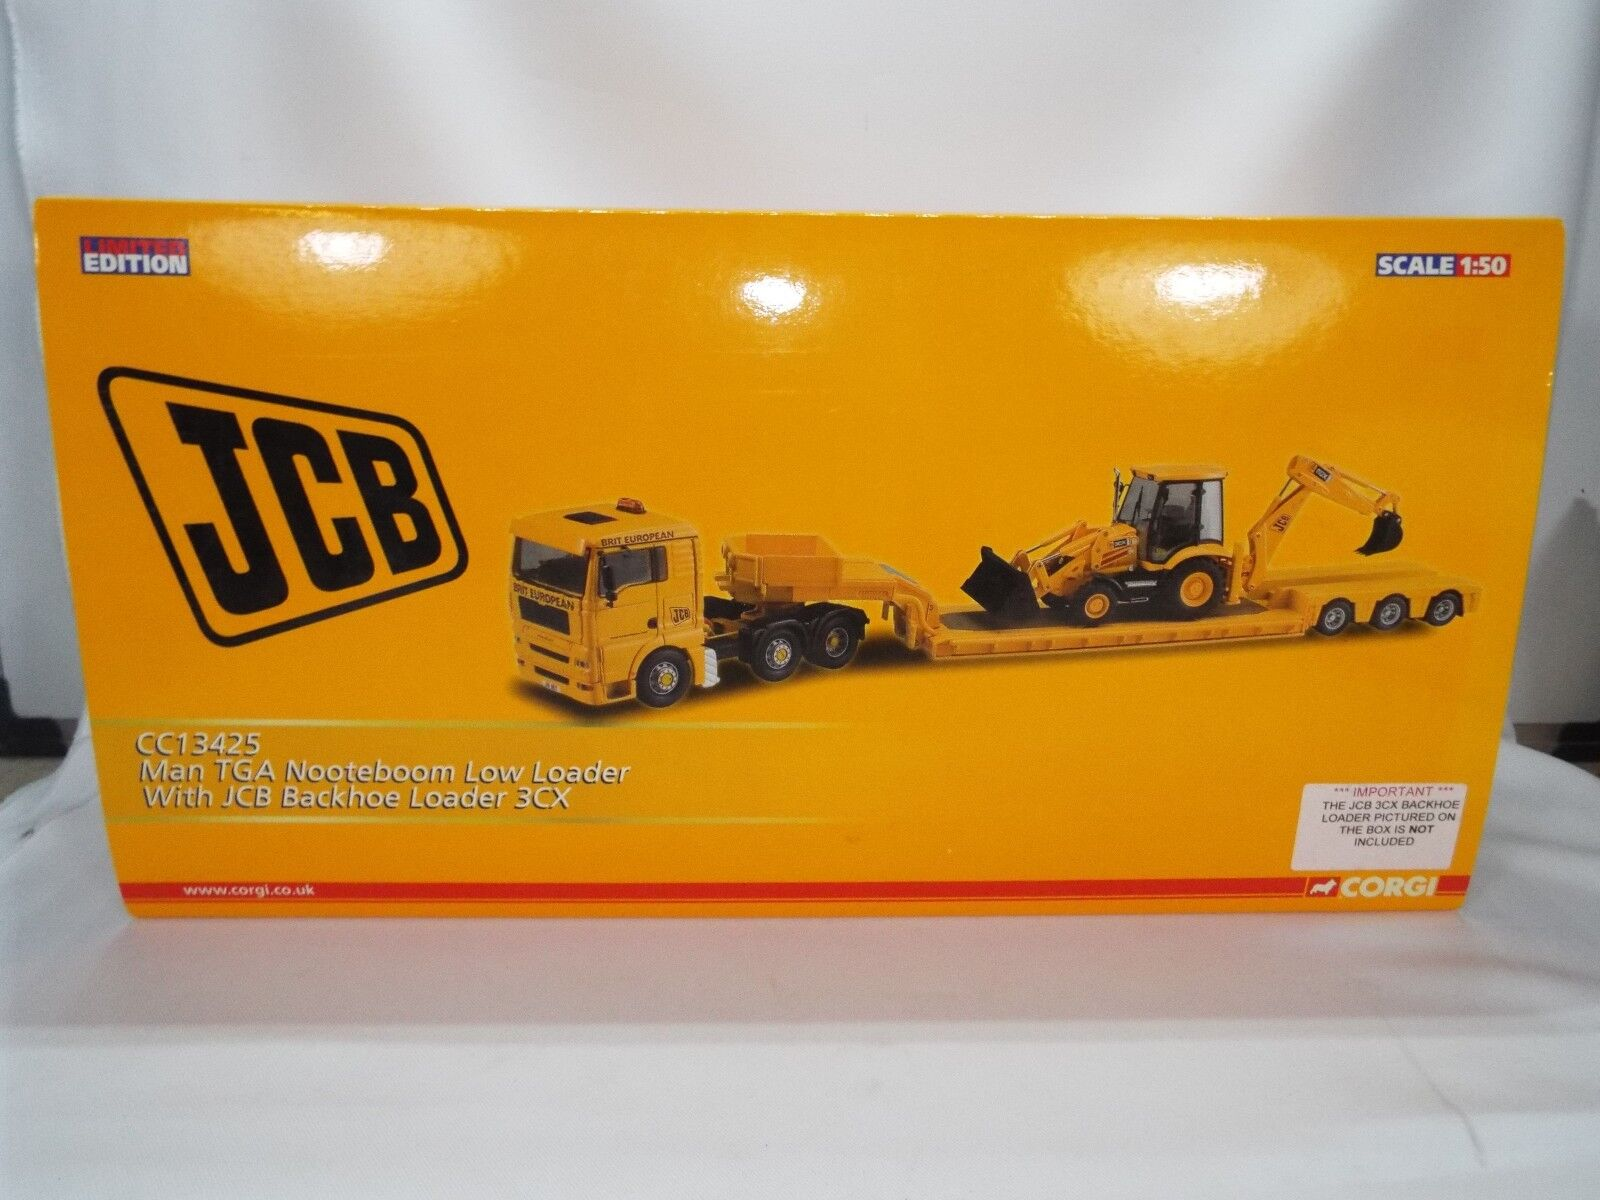 Corgi JCB Set No 13425 and is the MAN TGA and Nooteboom ,complete with JCB